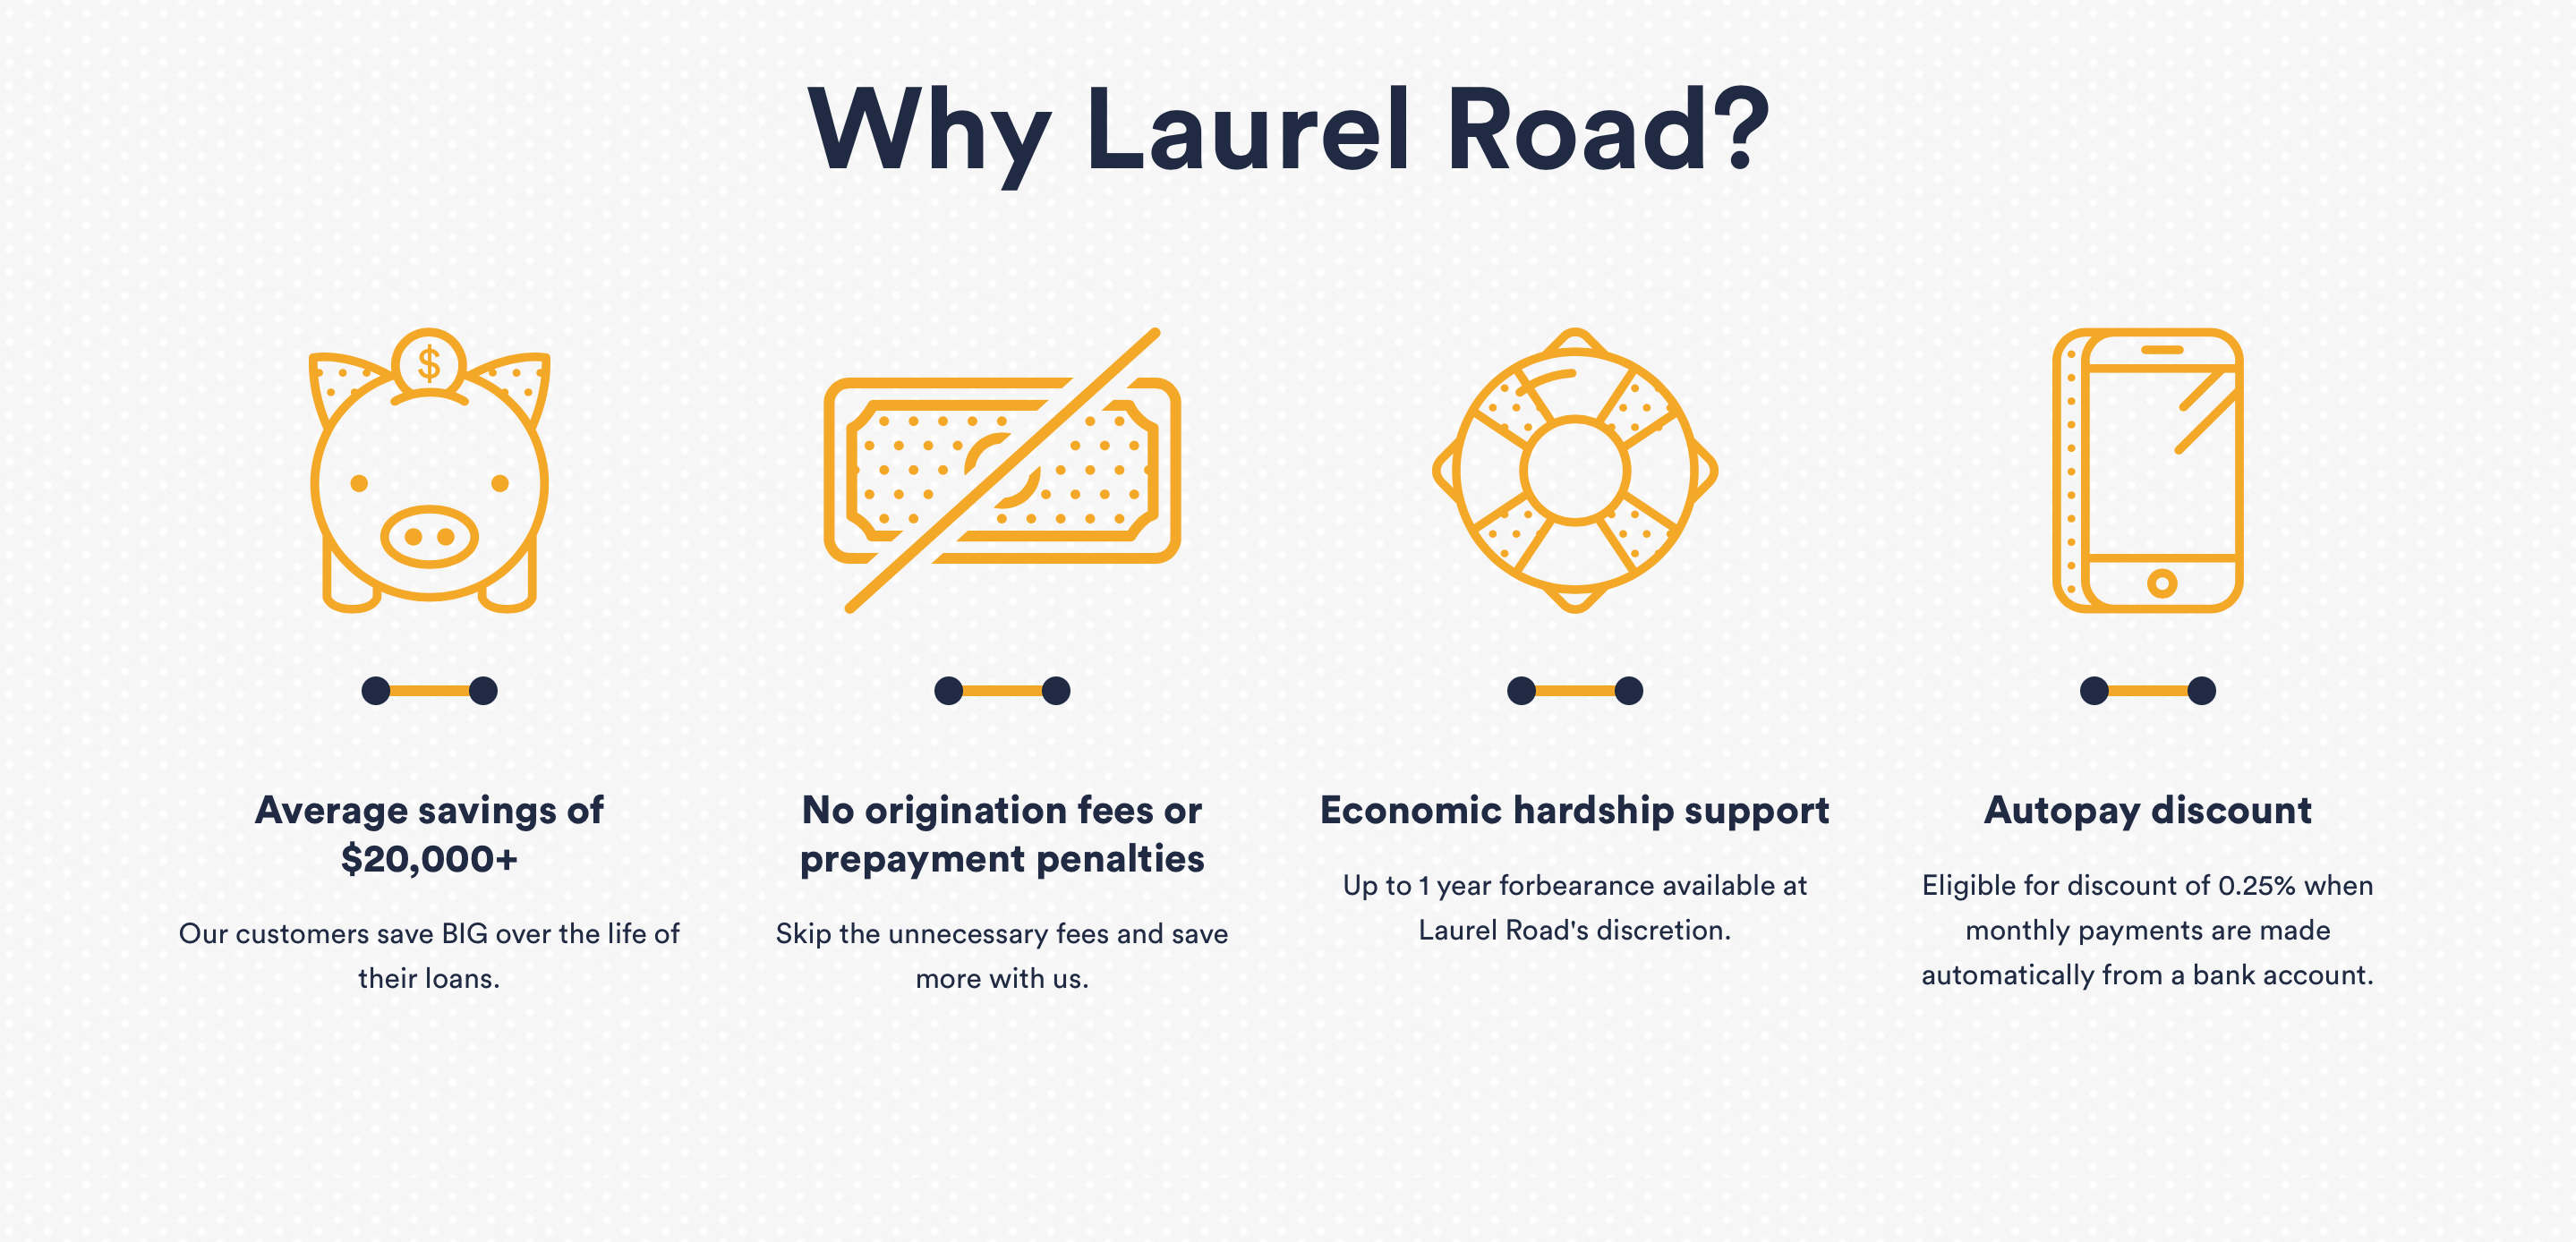 This image is used to help give users a better idea about the values and offerings of Laurel Road.